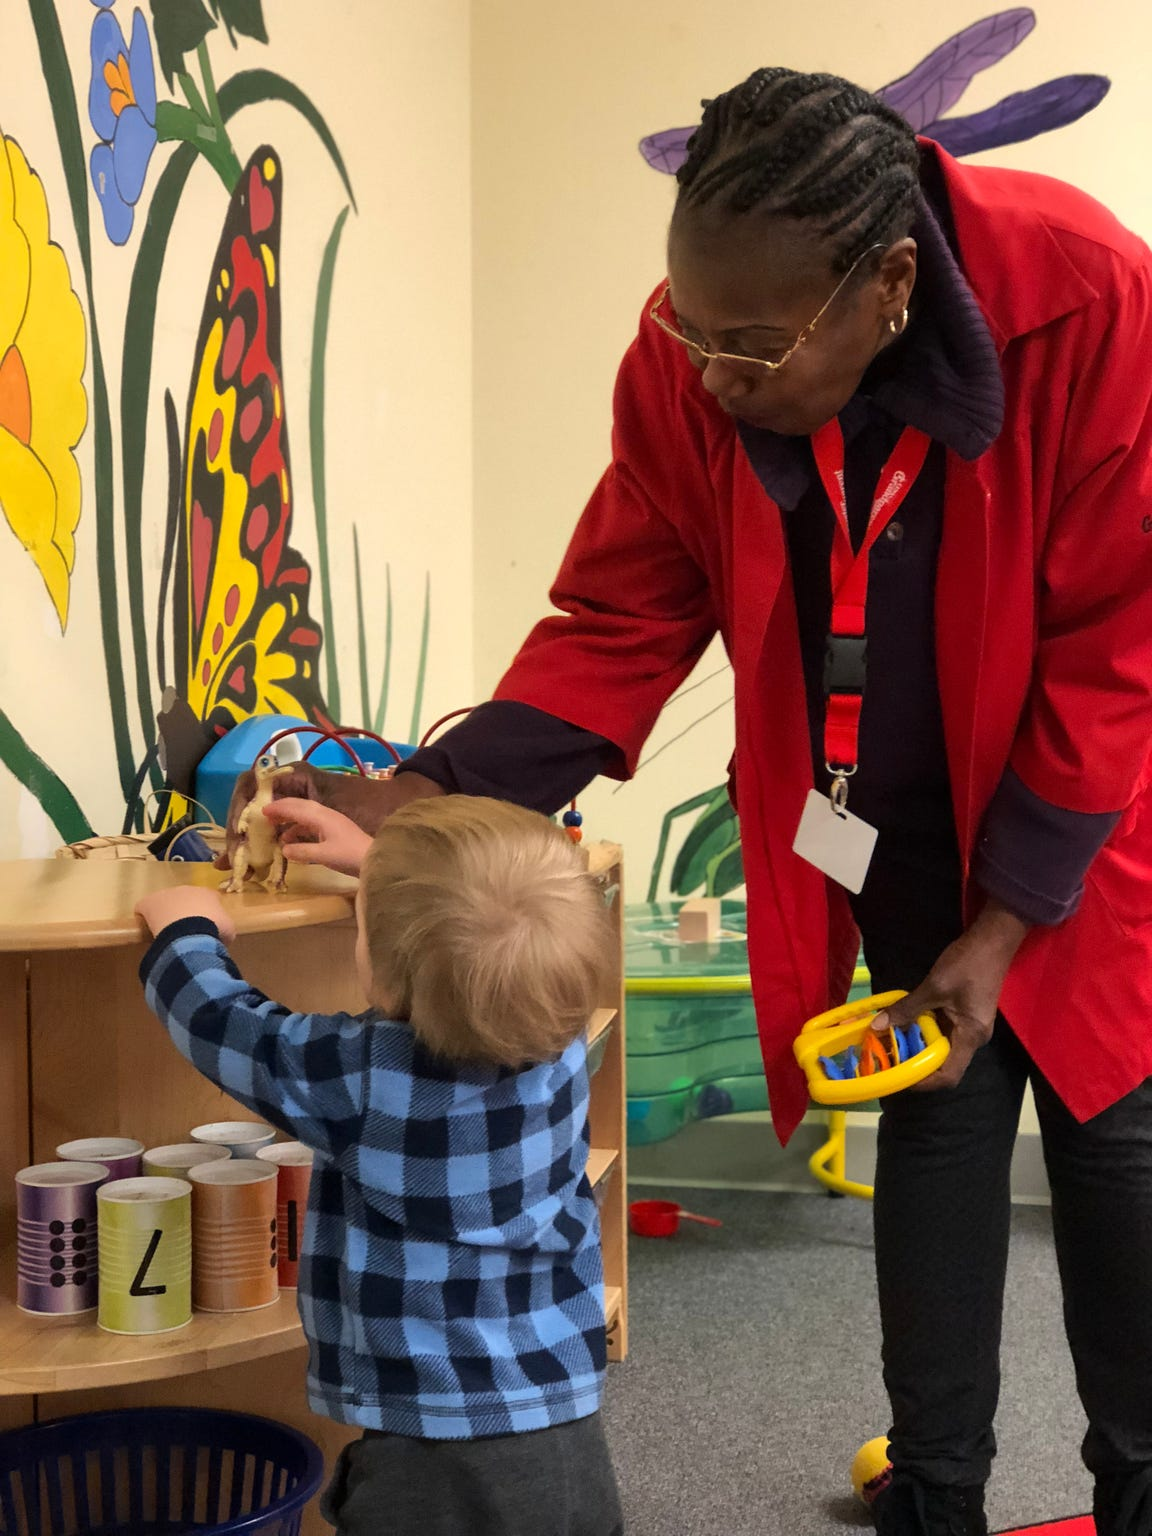 Phyllis Austin is a Foster Grandparent at Paws and Stripes Daycare, volunteering to help out in the toddler room.